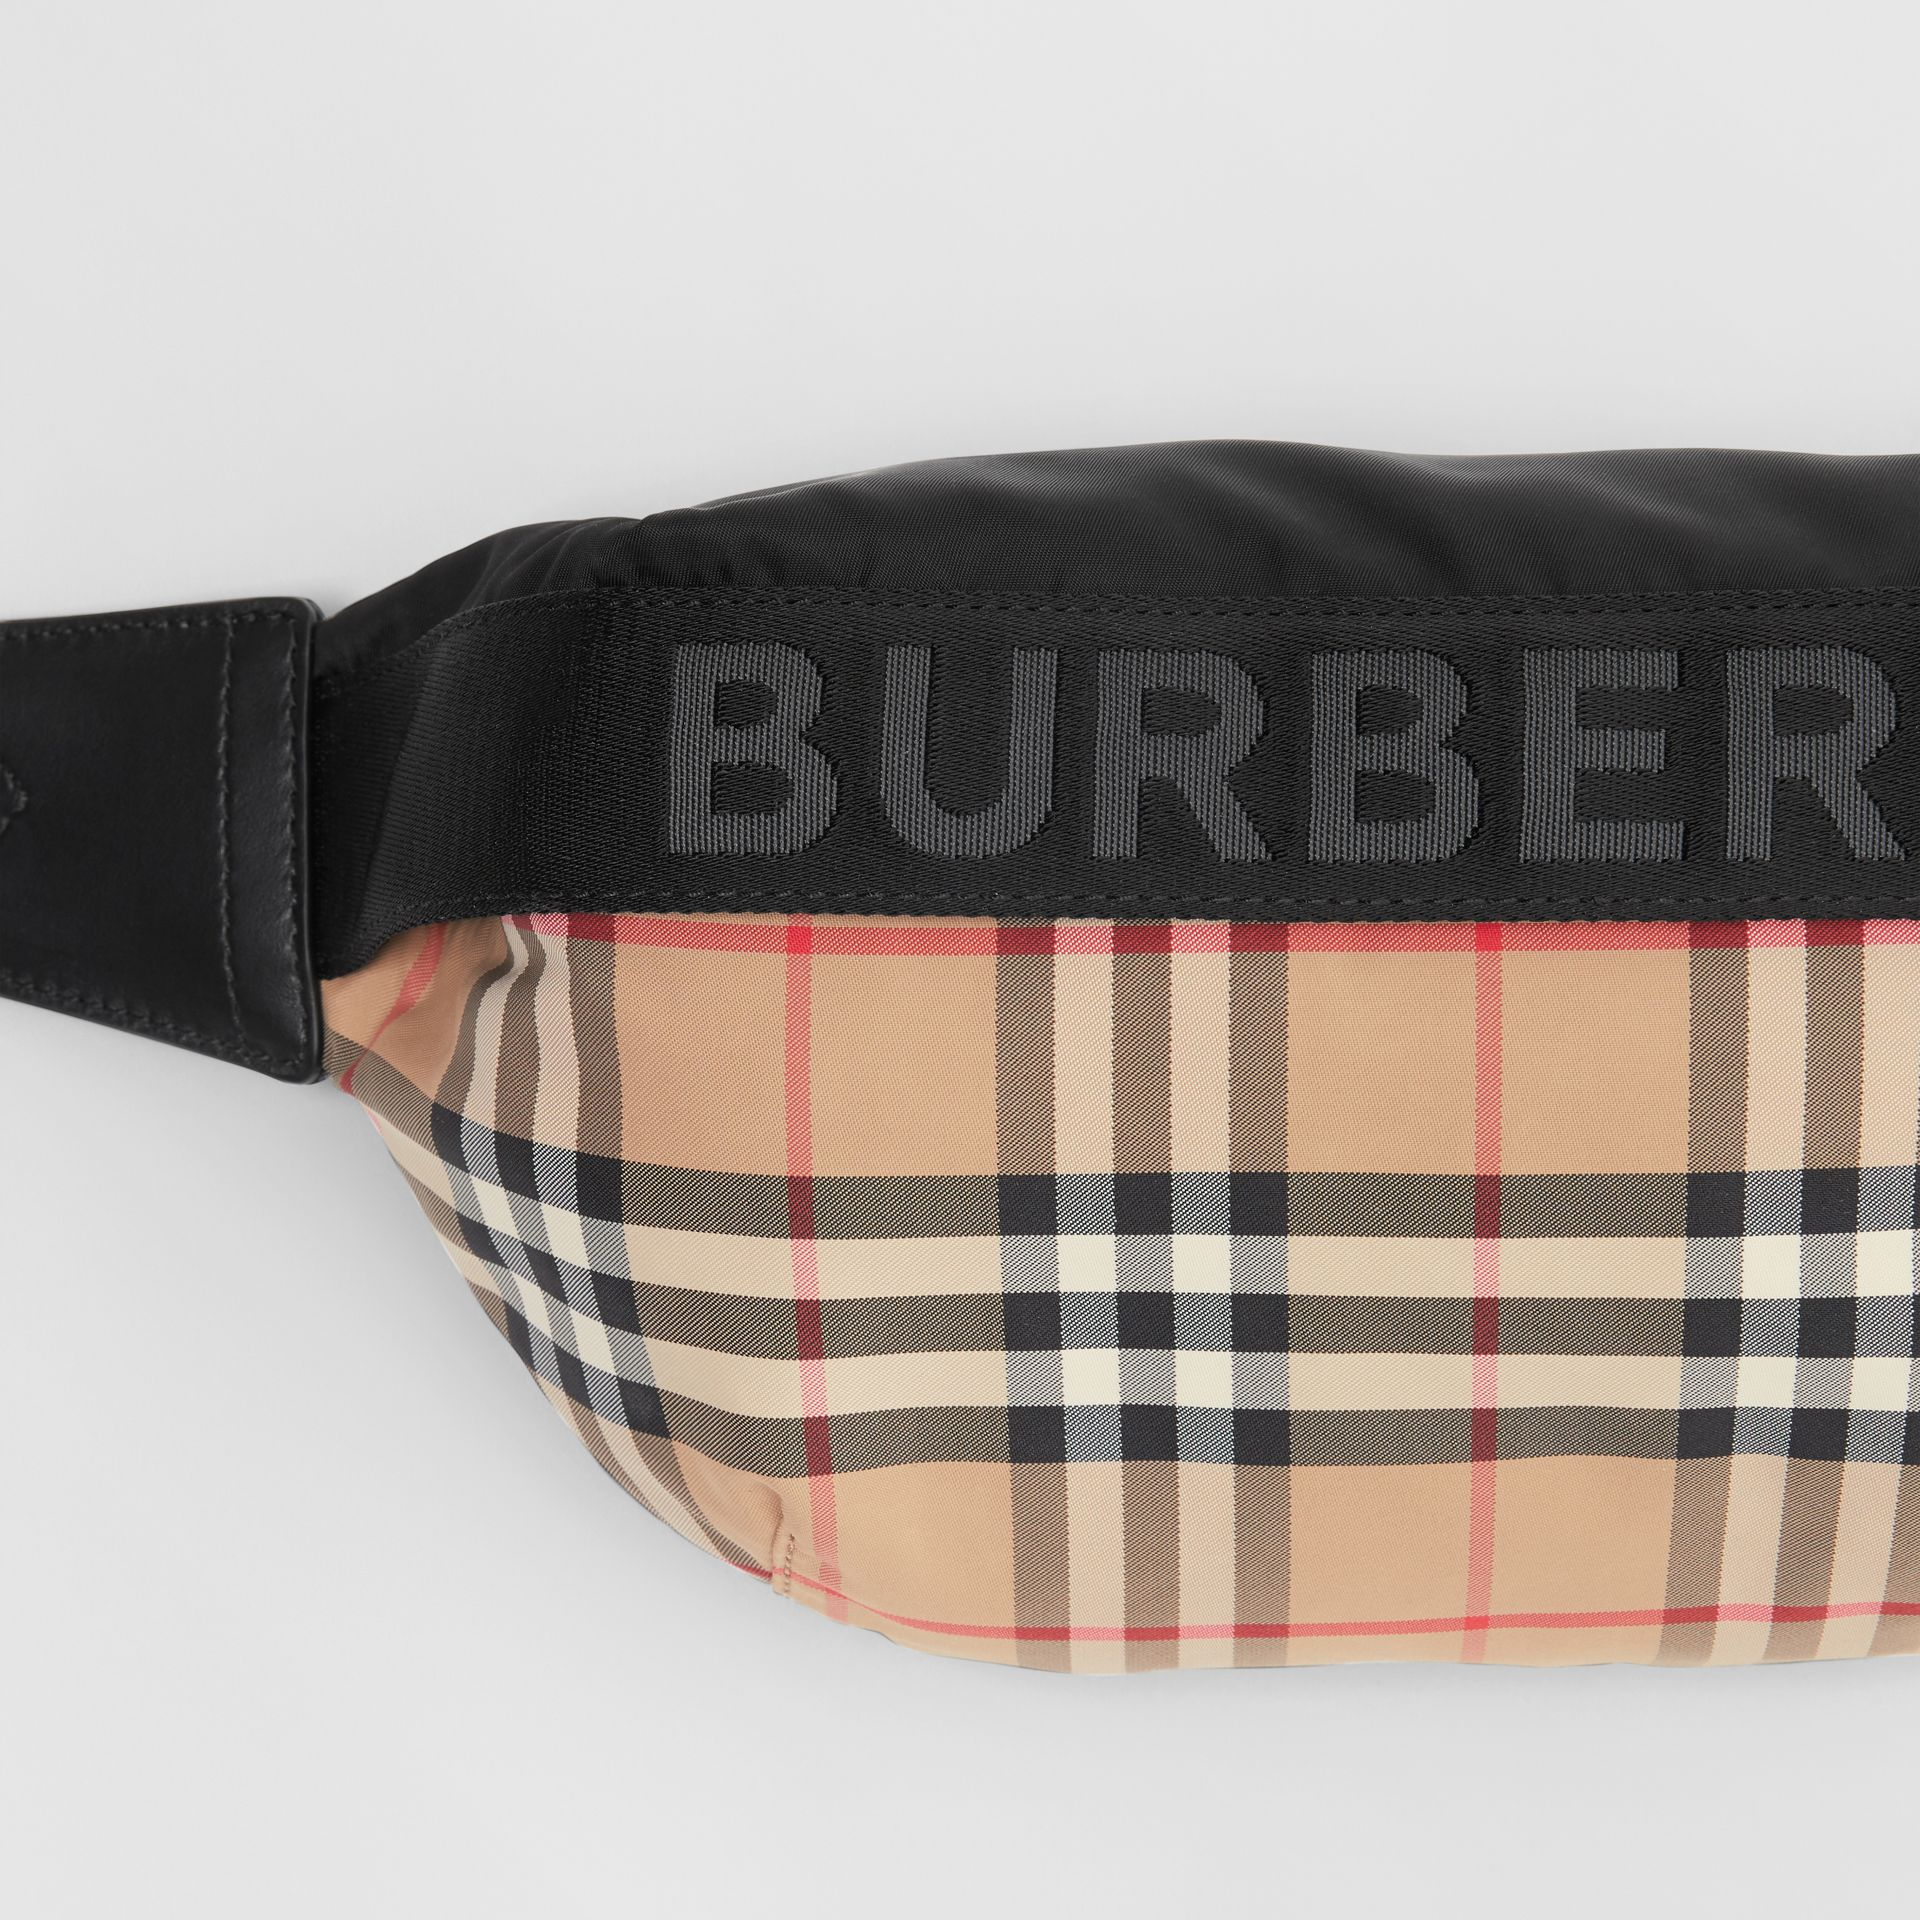 Medium Vintage Check Bum Bag in Archive Beige | Burberry Australia - gallery image 7